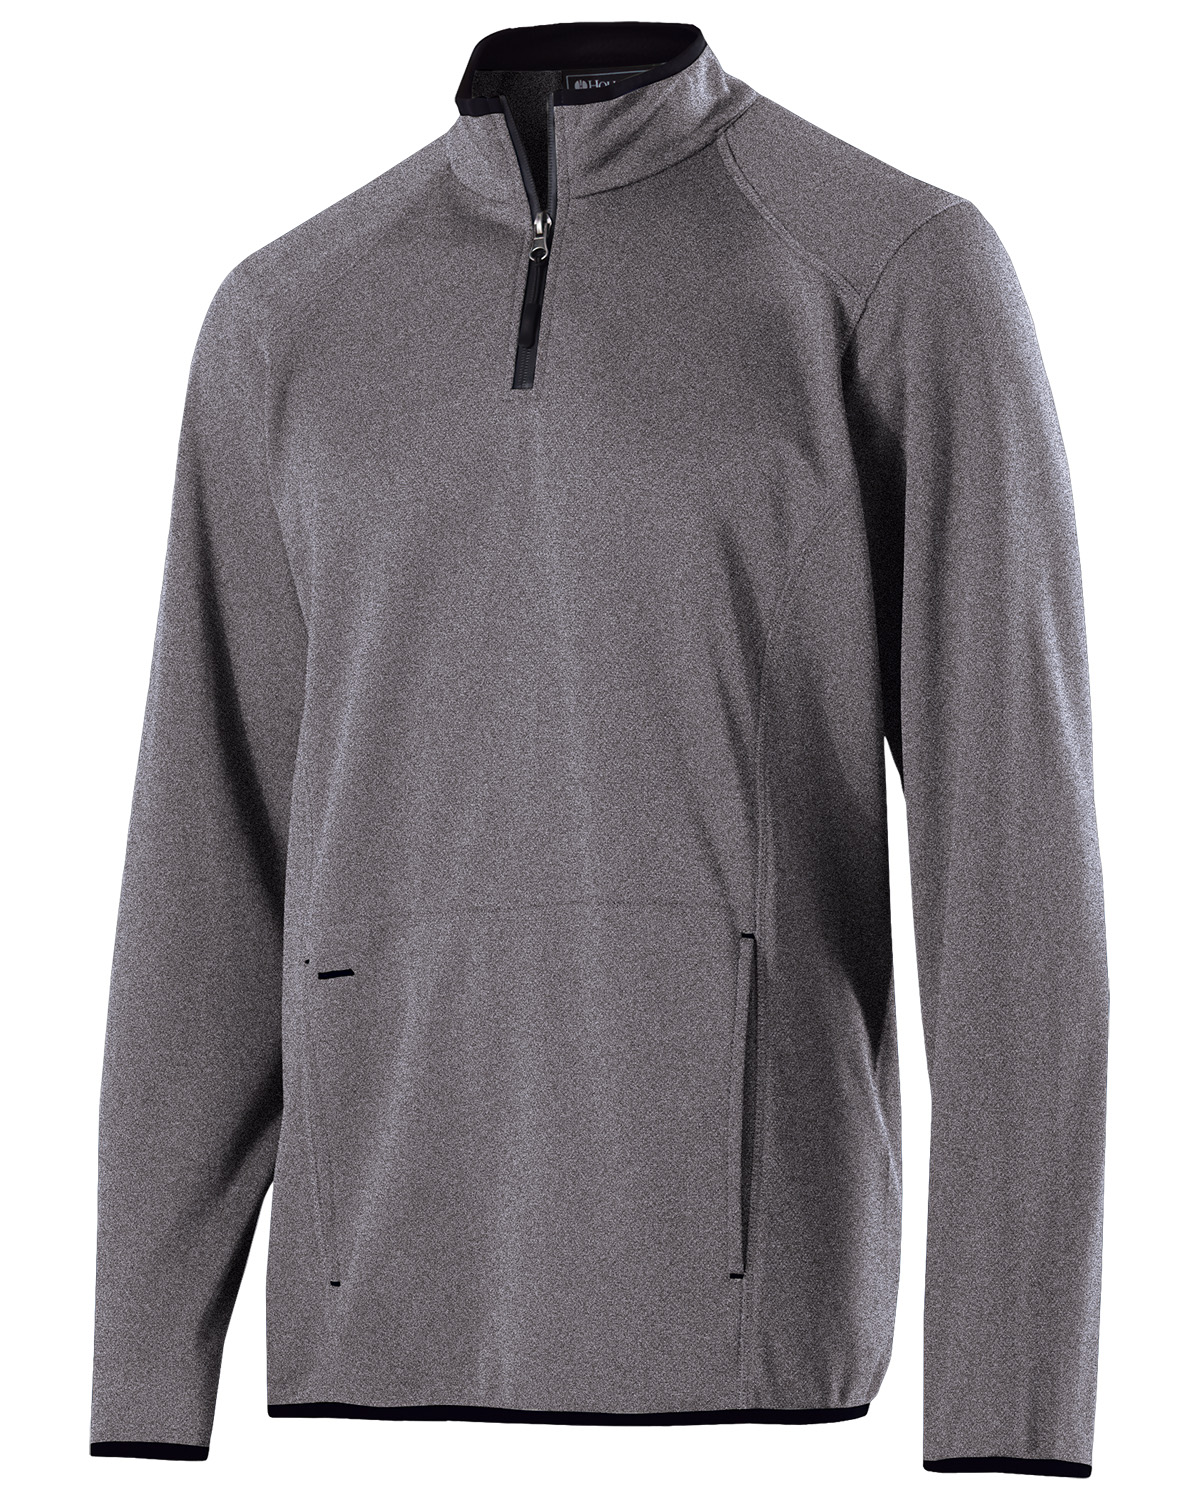 Holloway 229176 - Adult Polyester Fleece 1/4 Zip Artillery ...